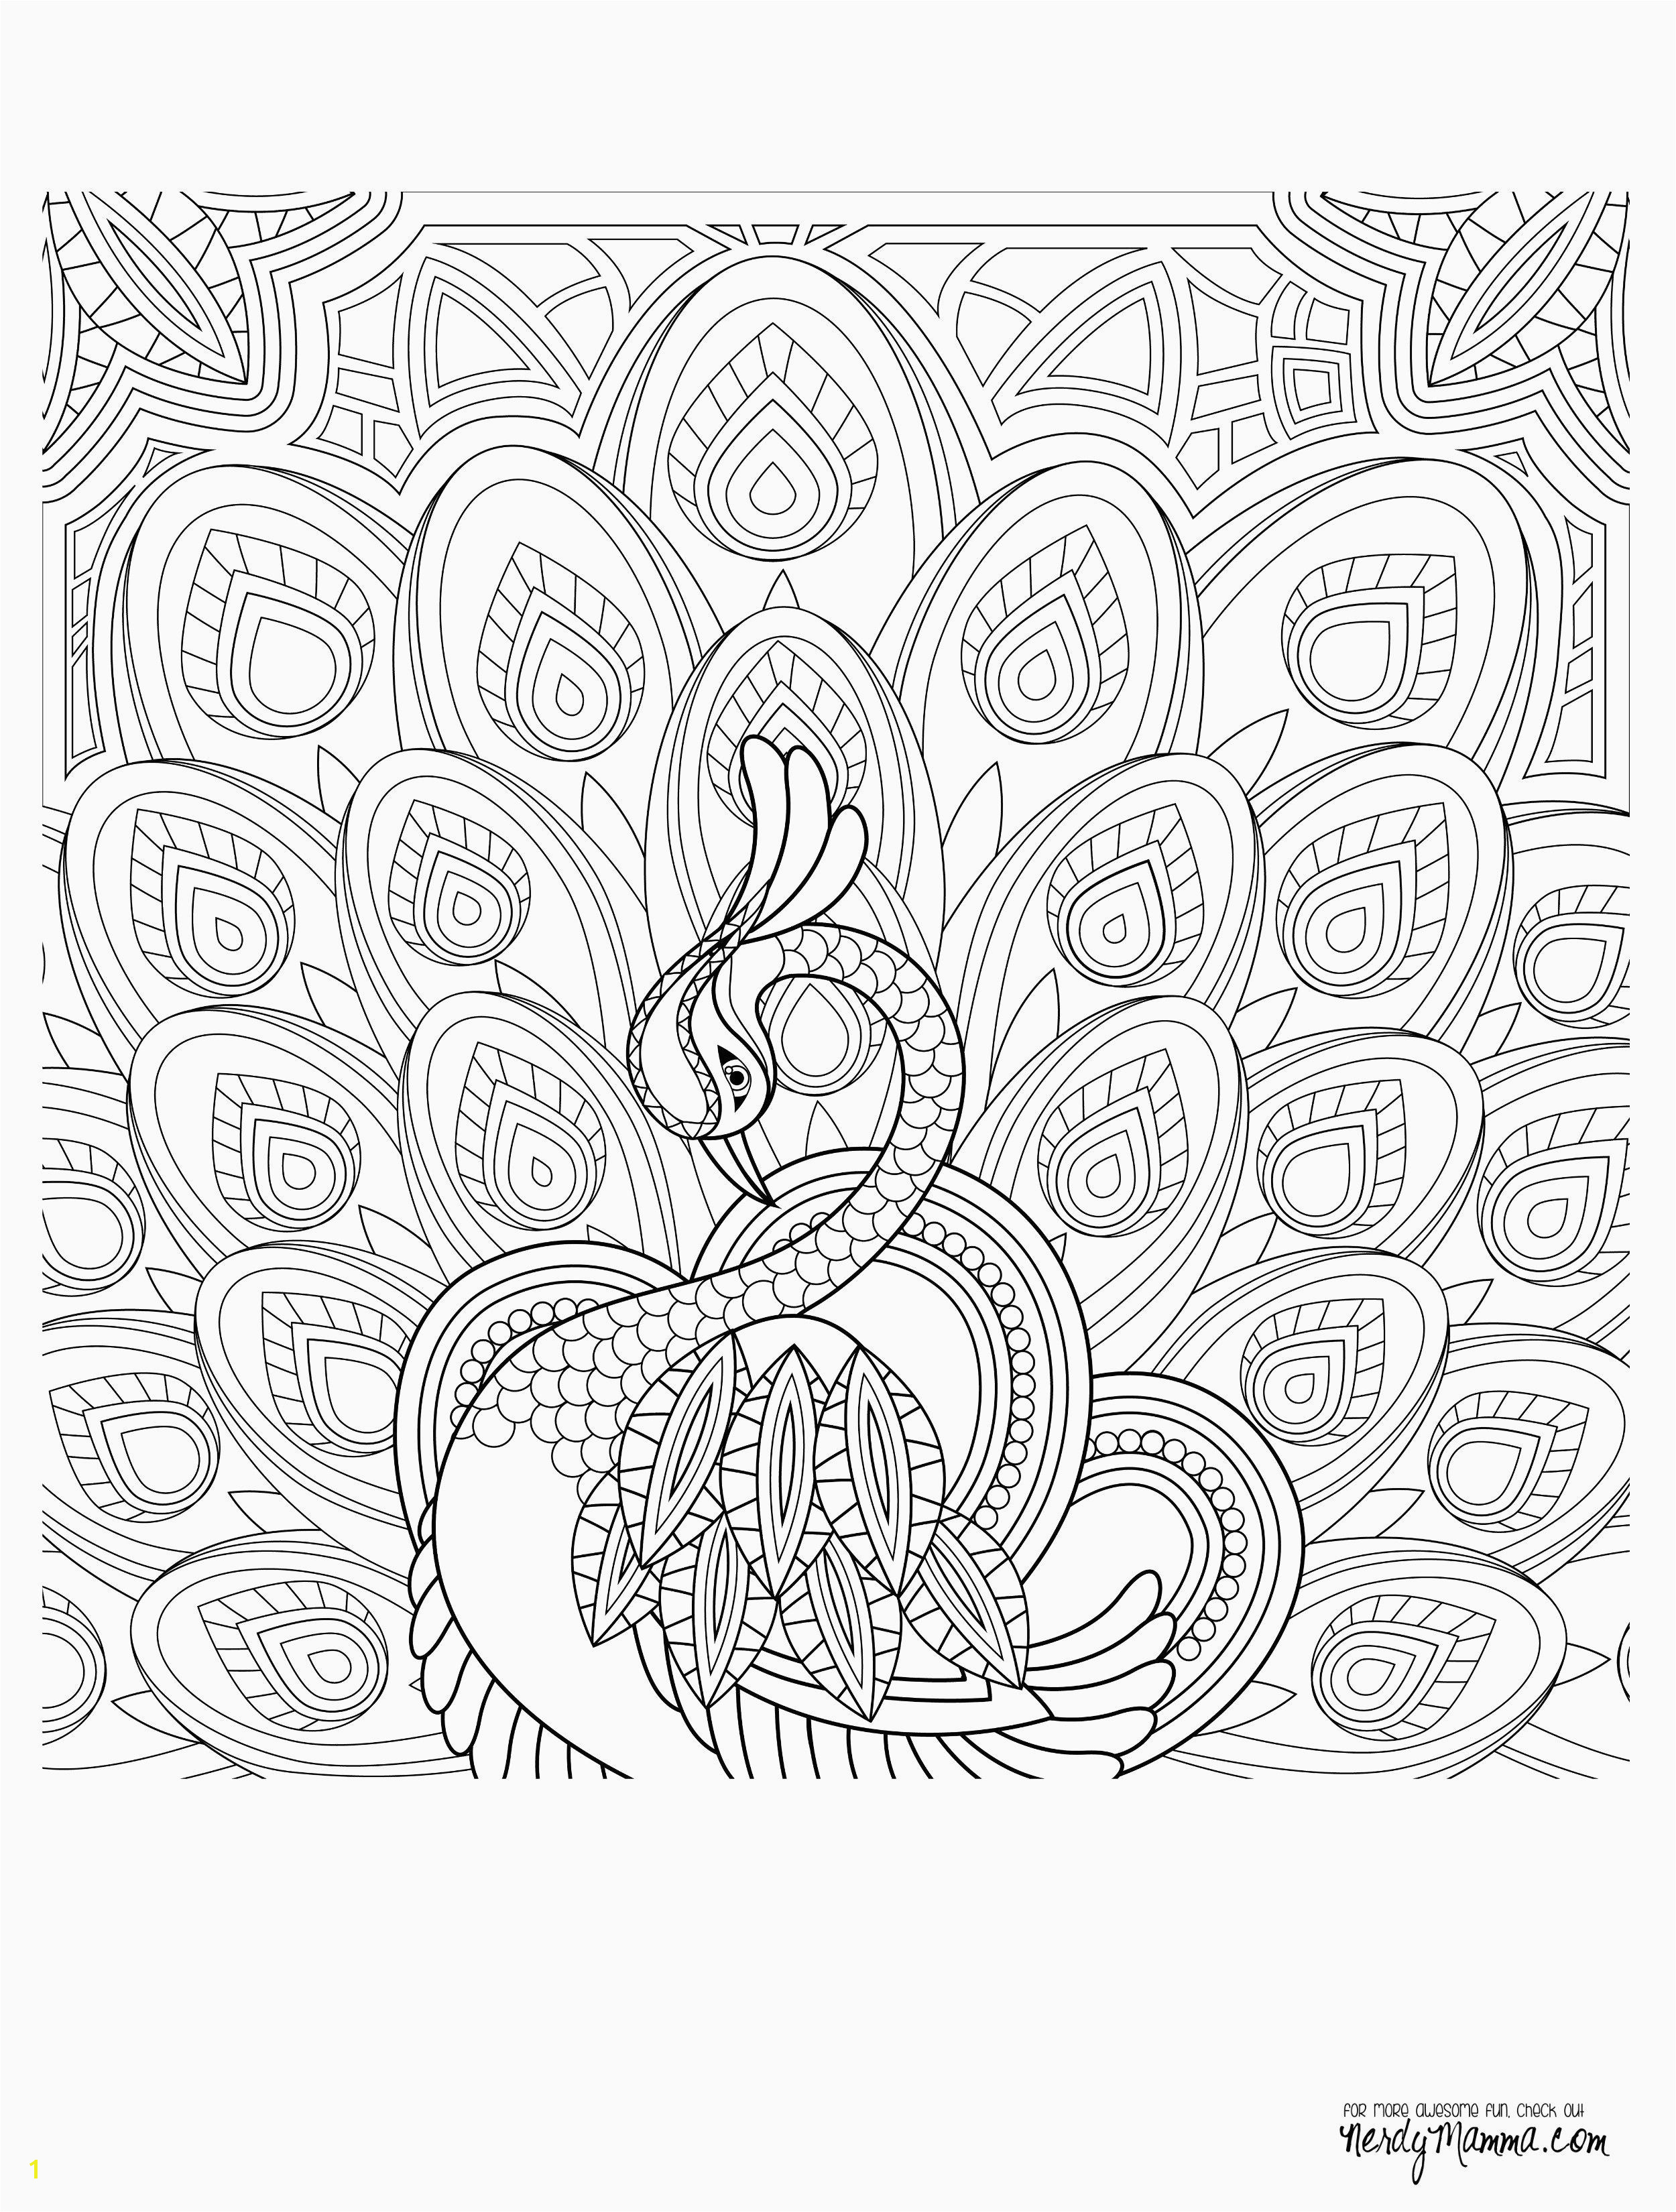 Free Animal Coloring Pages for Kids Free Printable Coloring Pages for Adults Best Awesome Coloring